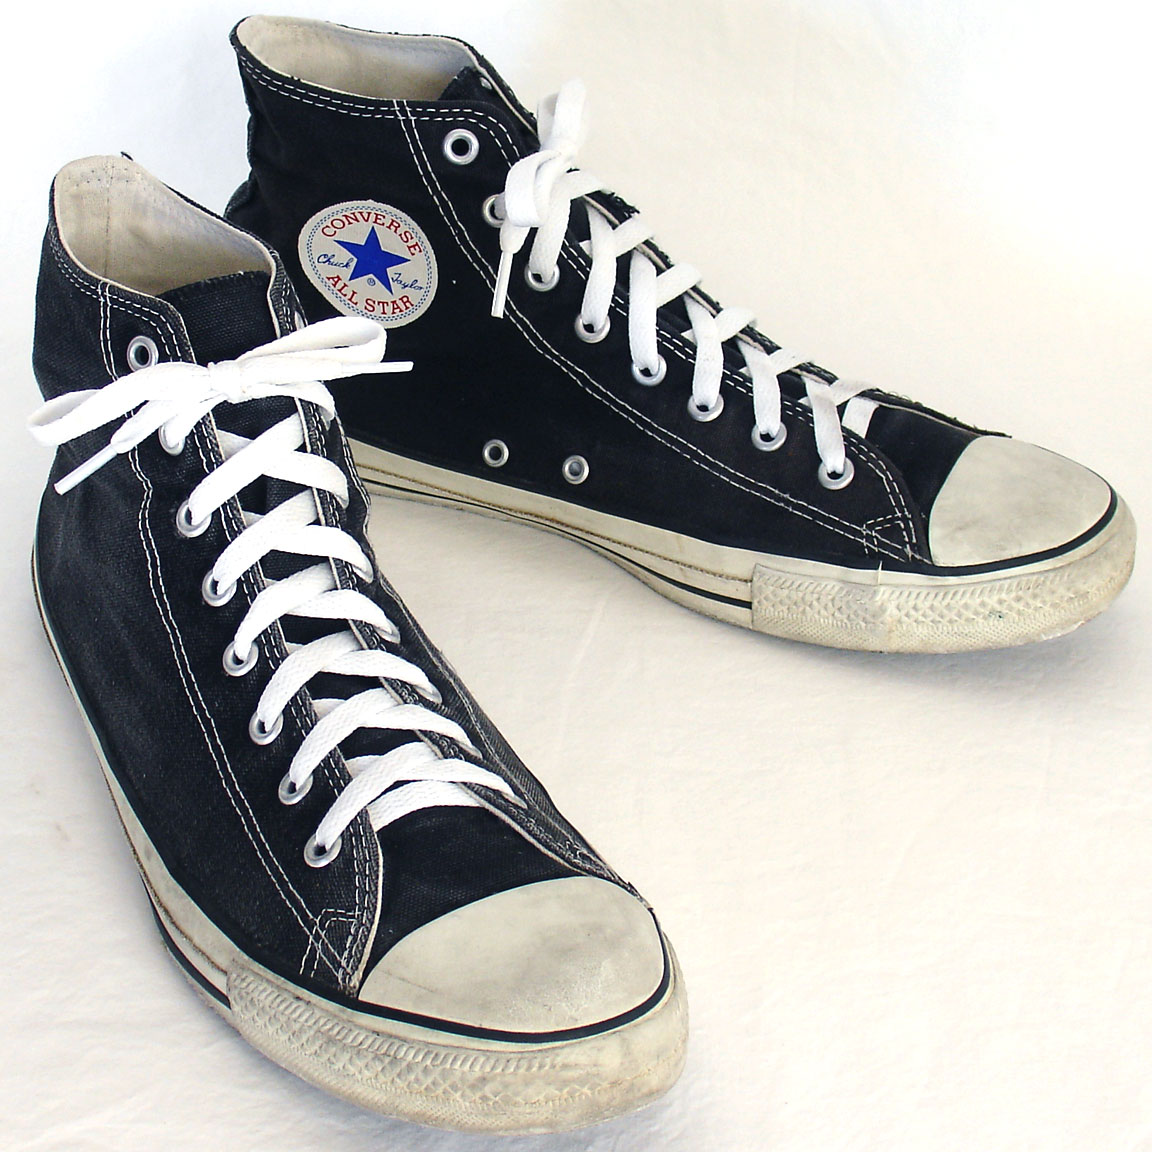 d9c02dca7183 Vintage American-made Converse All Star Chuck Taylor black hi-top shoes for  sale